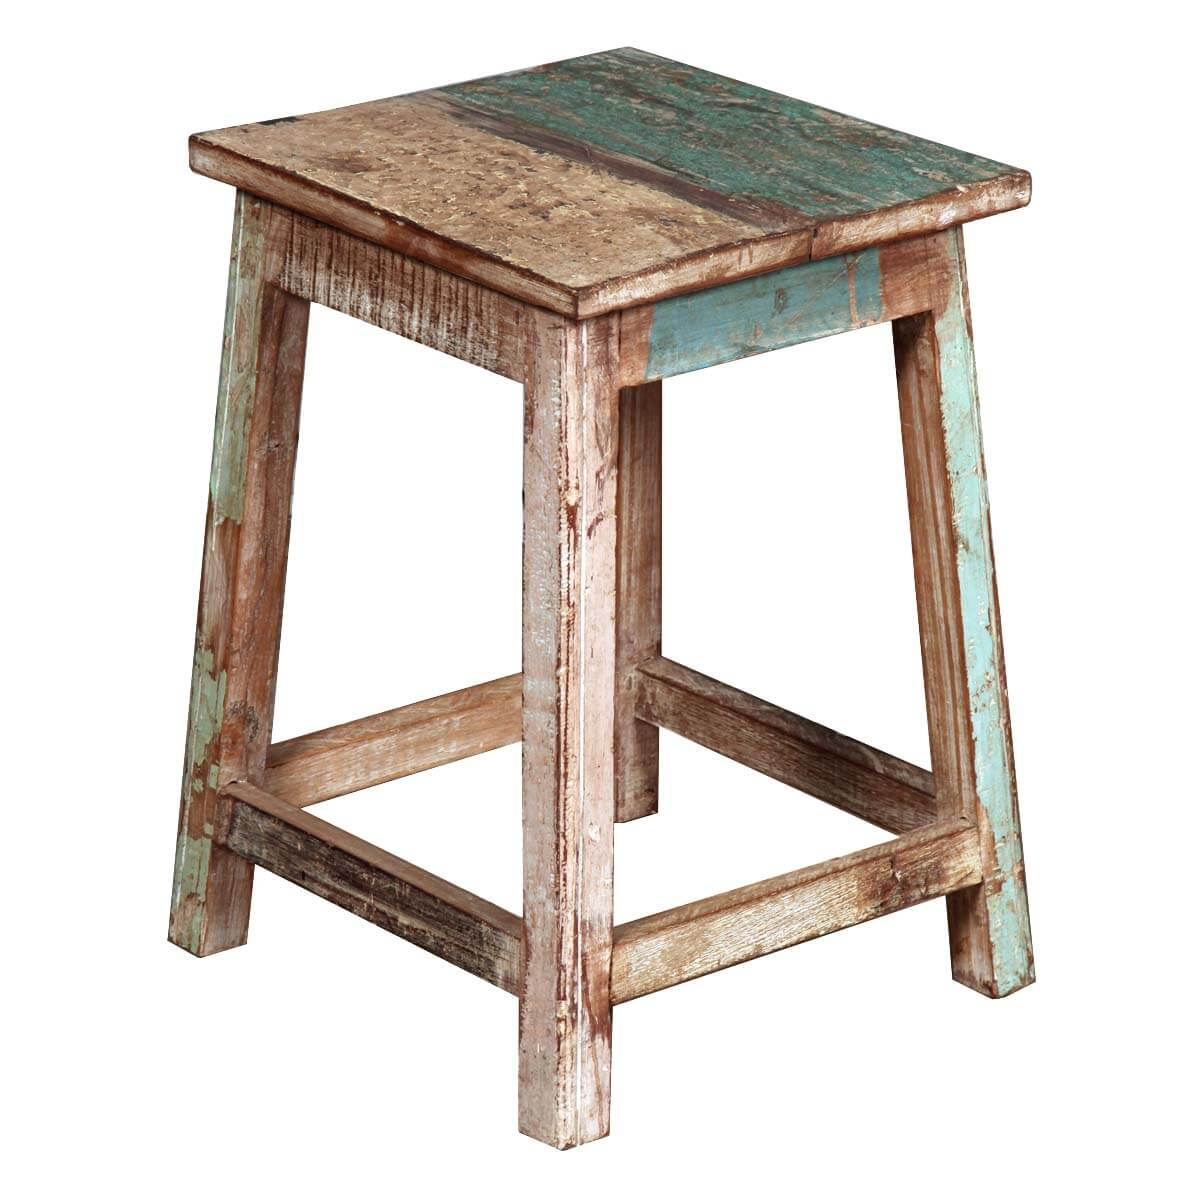 Reclaimed Wood End Tables ~ Appalachian rustic solid reclaimed wood square end table stool